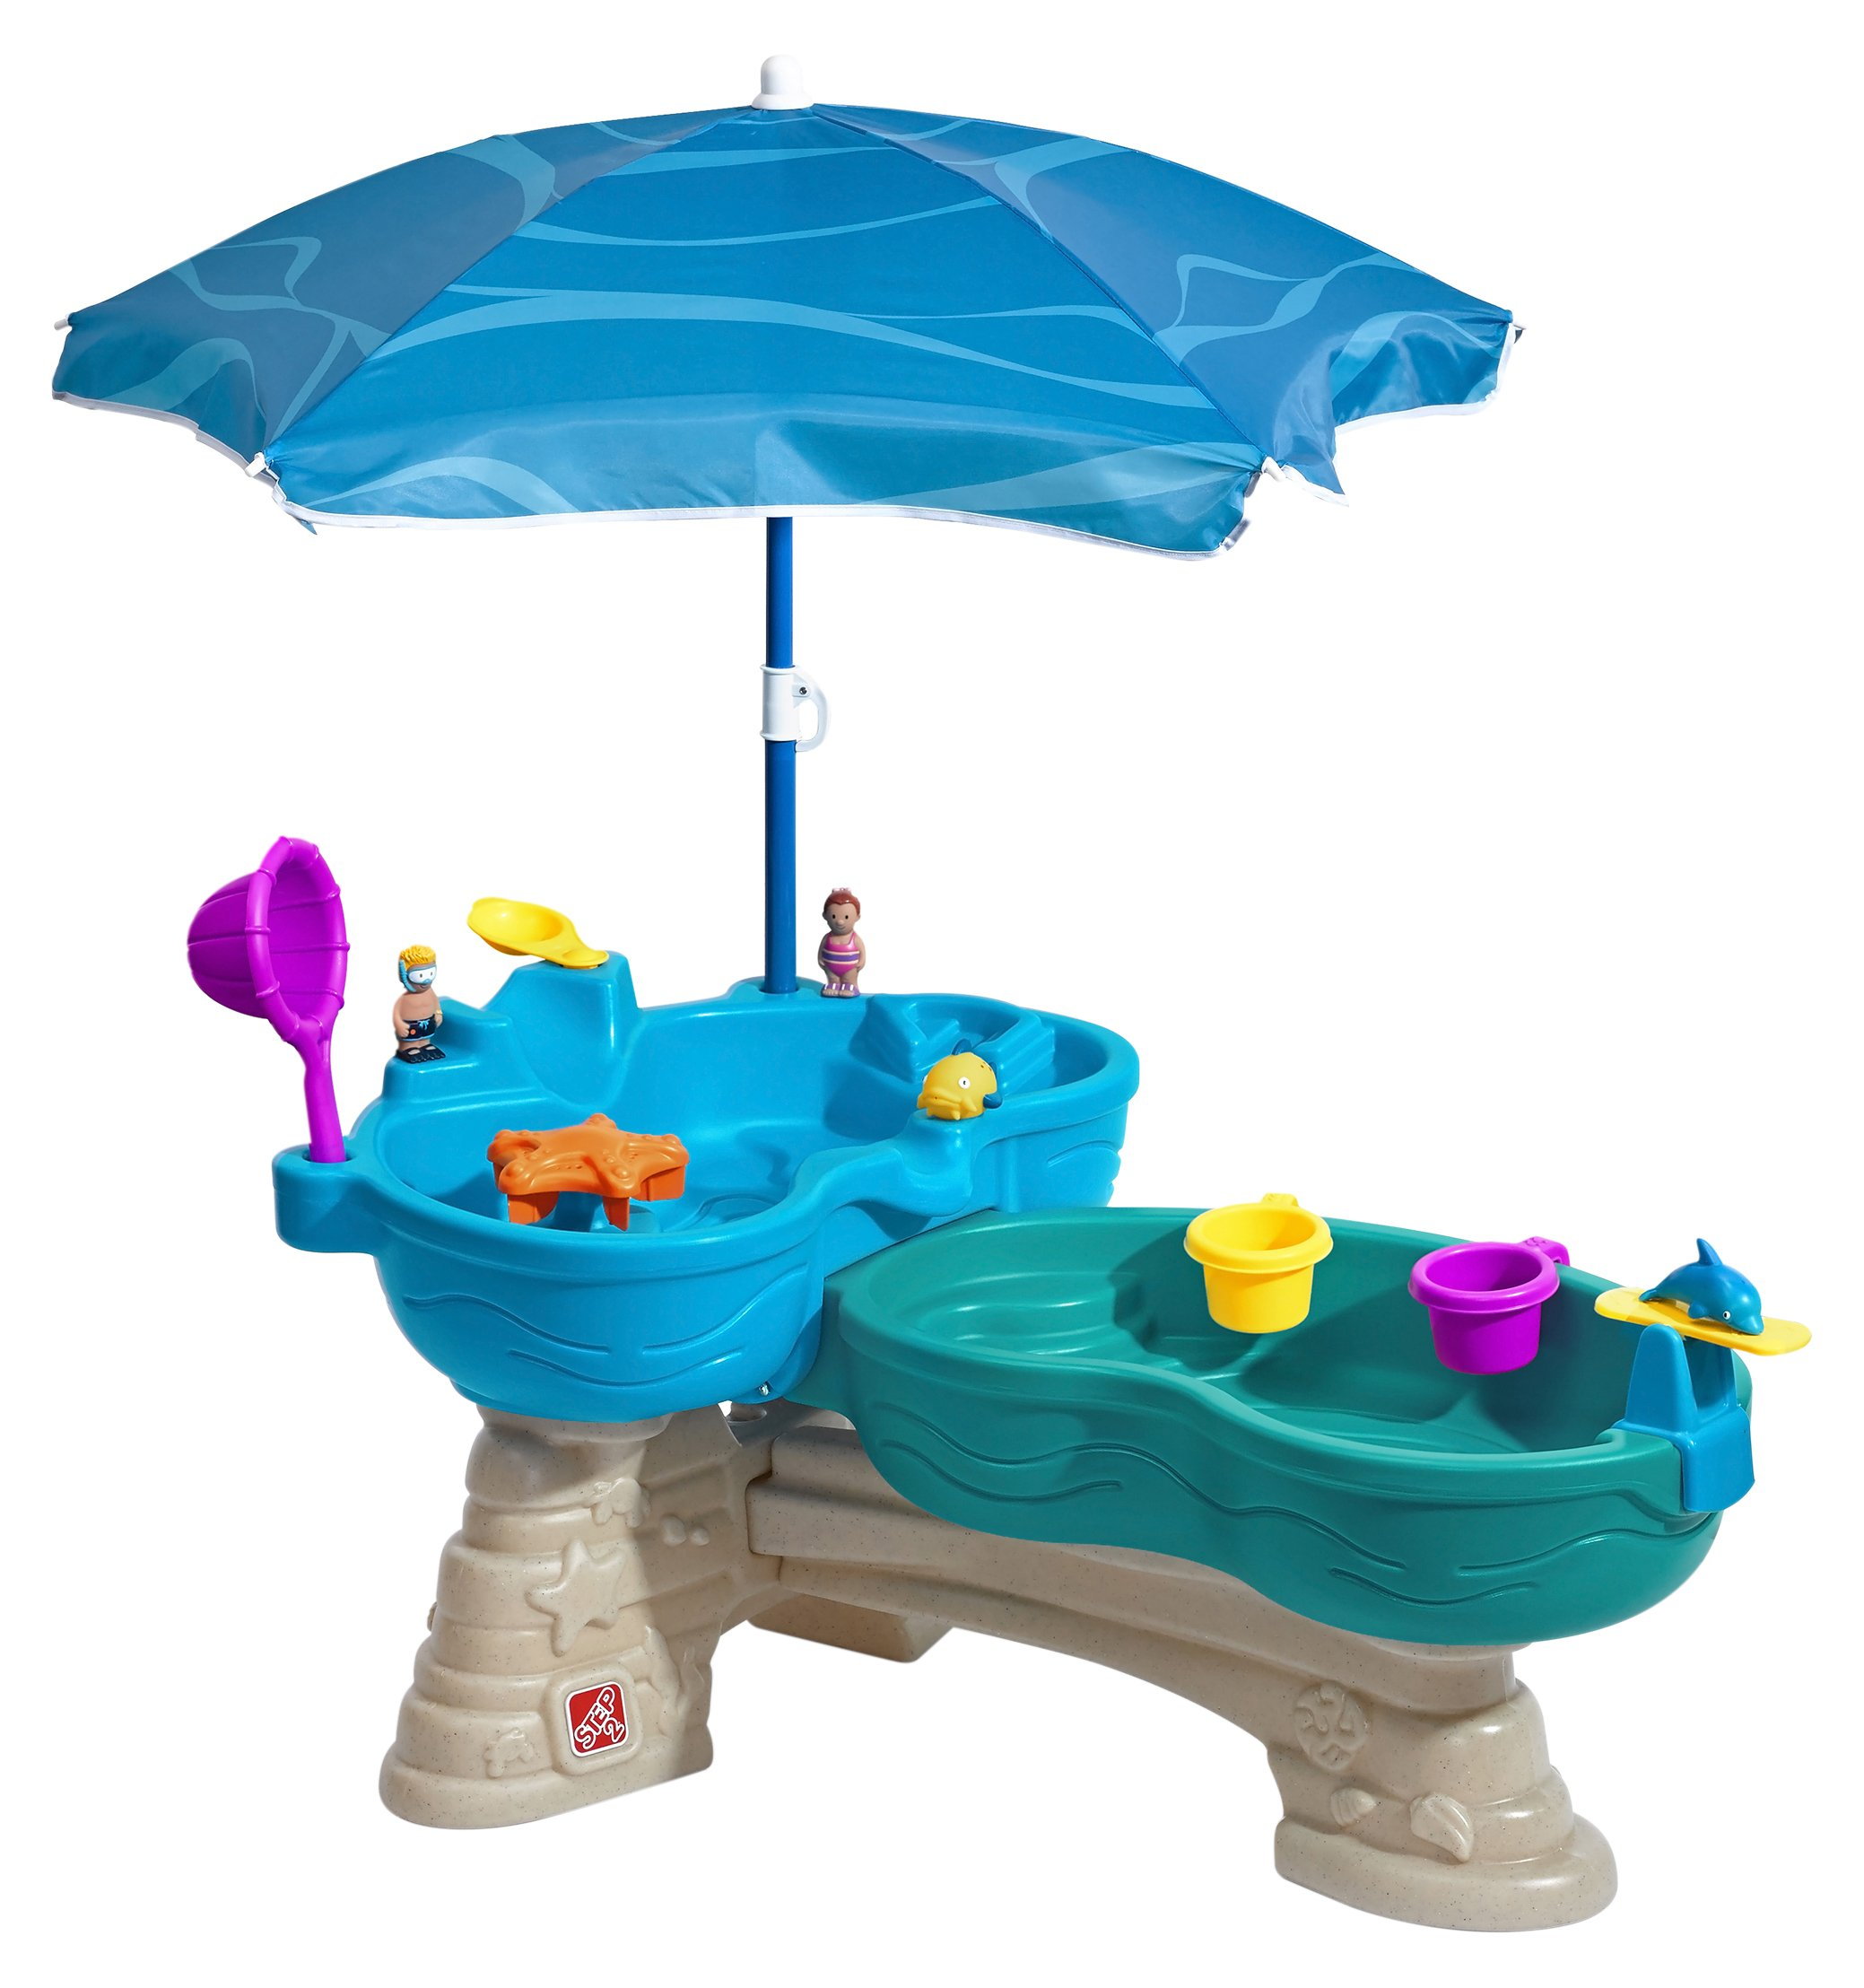 Kids Water Table Children Summer Toys Backyard Toddler Activity Center  Umbrella